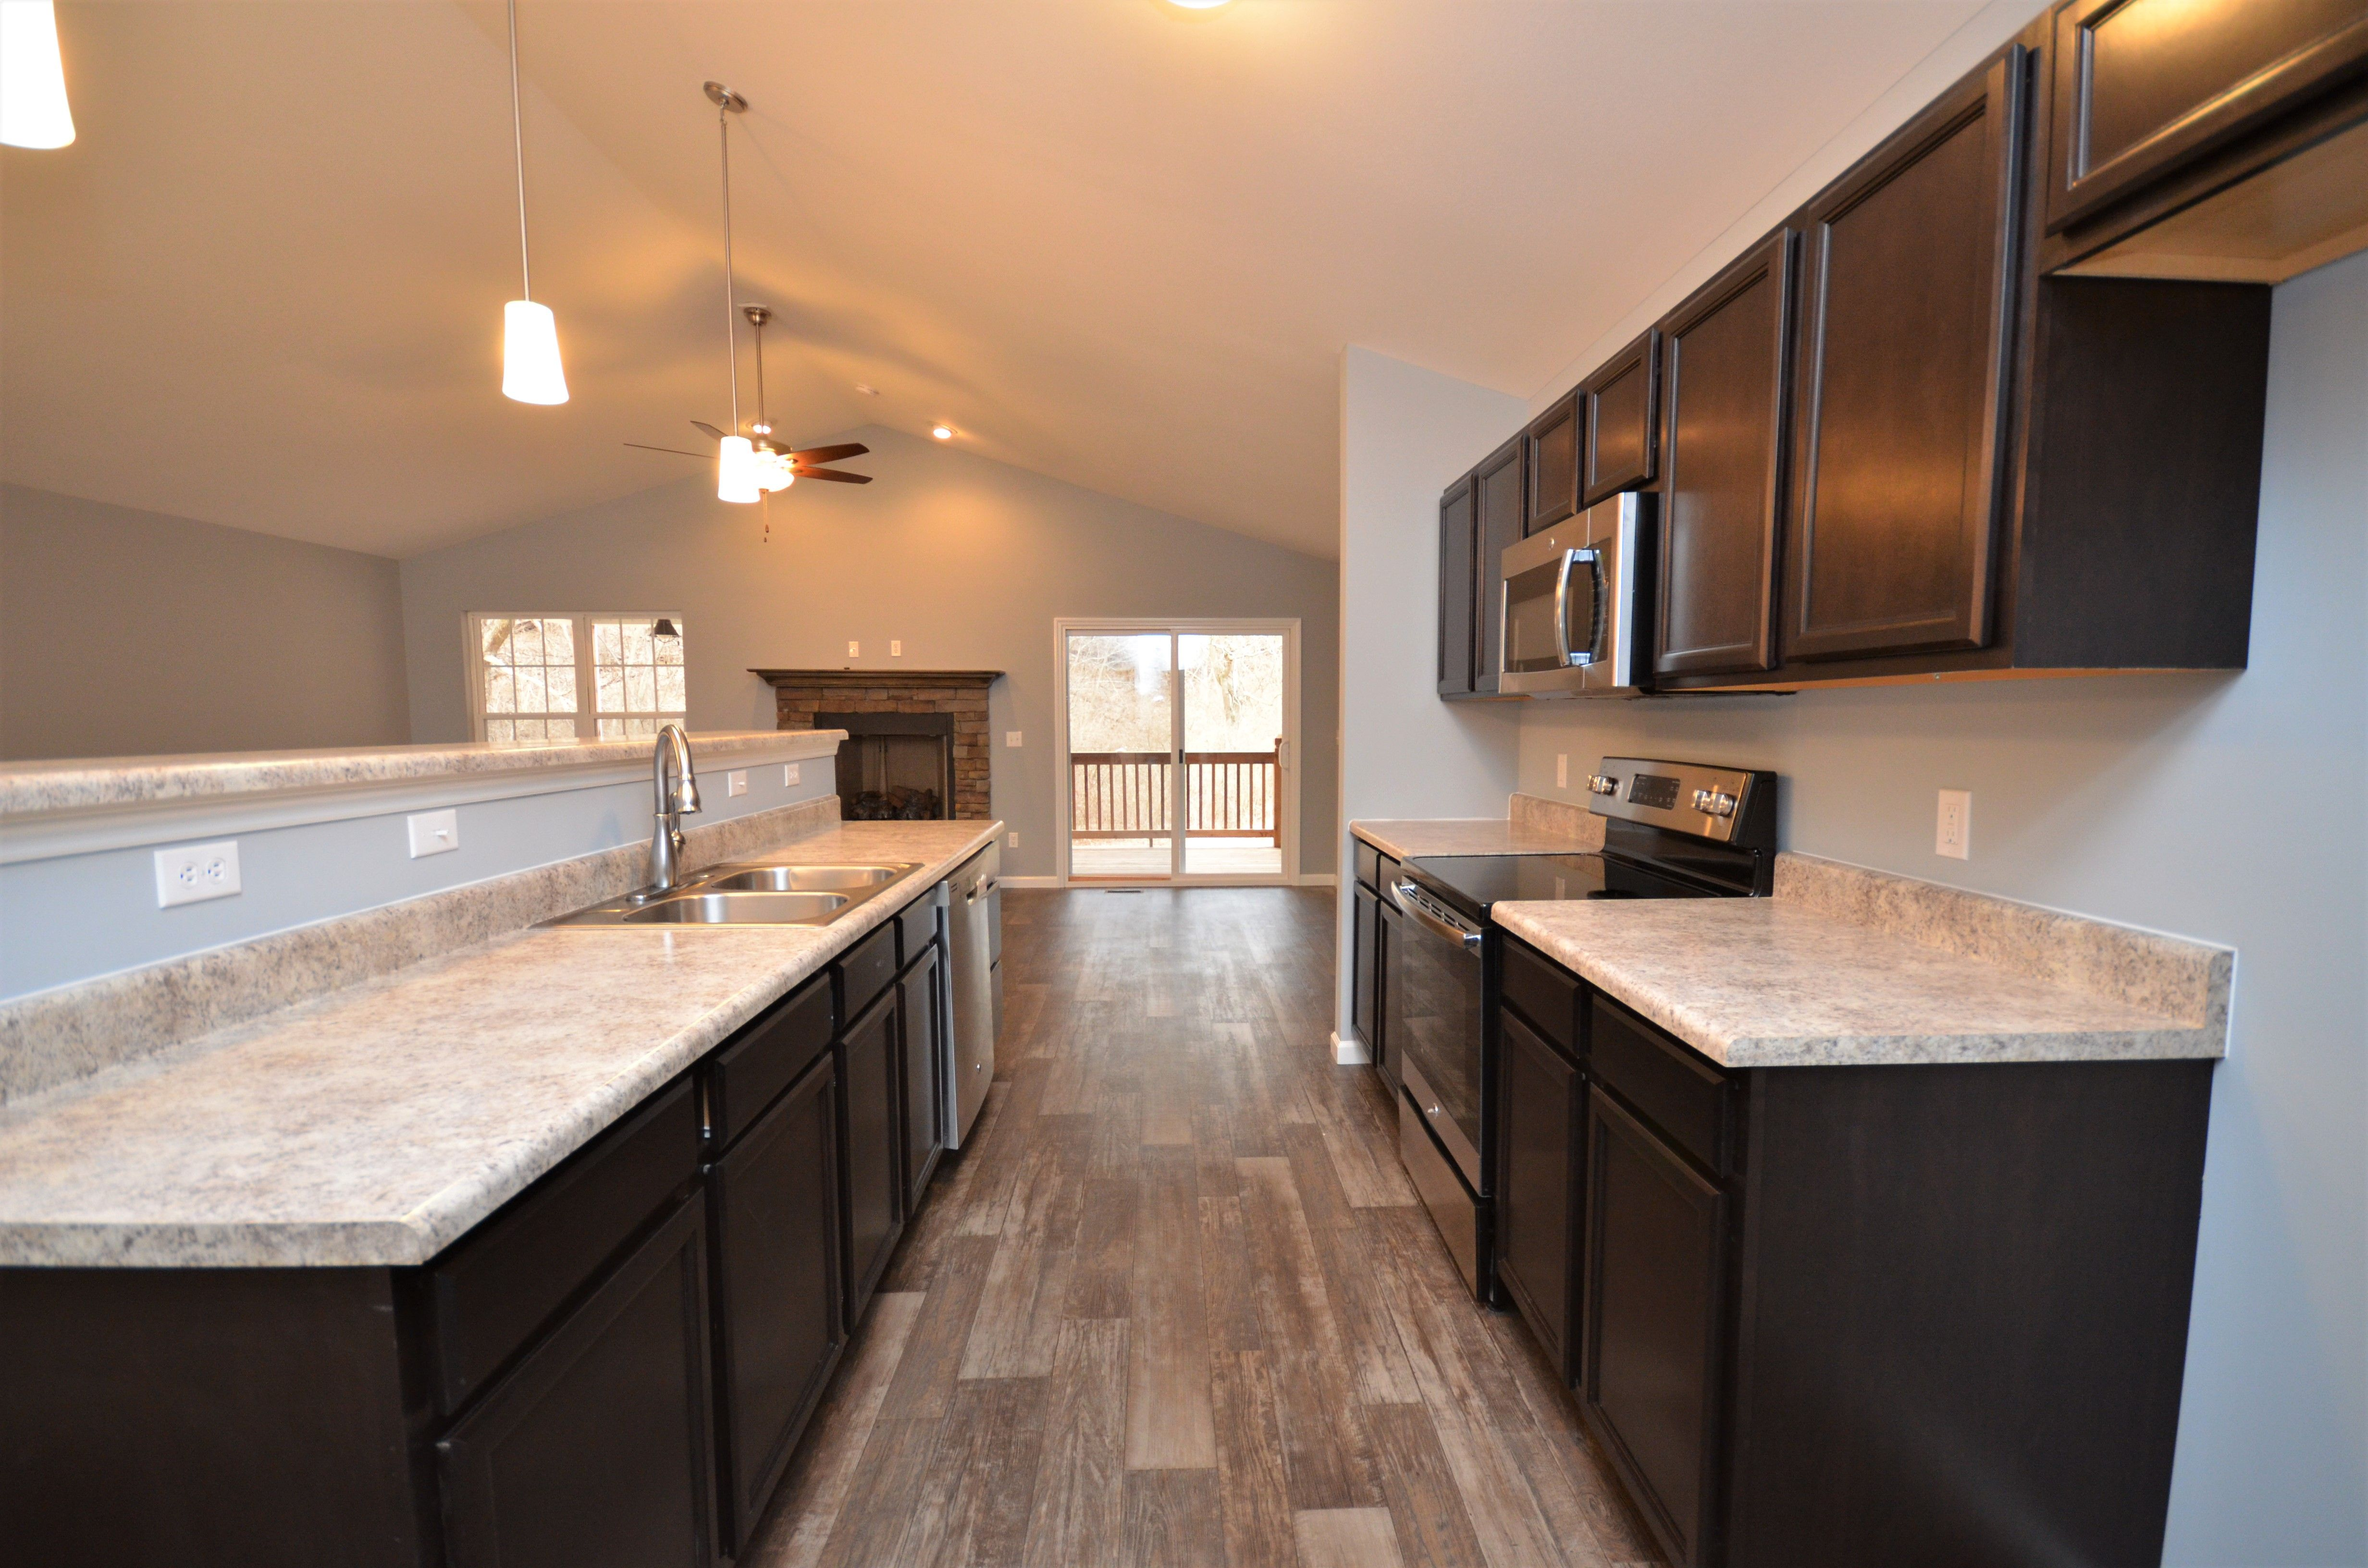 Kitchen featured in The Hermitage By Cannon Builders, Inc.  in St. Louis, MO